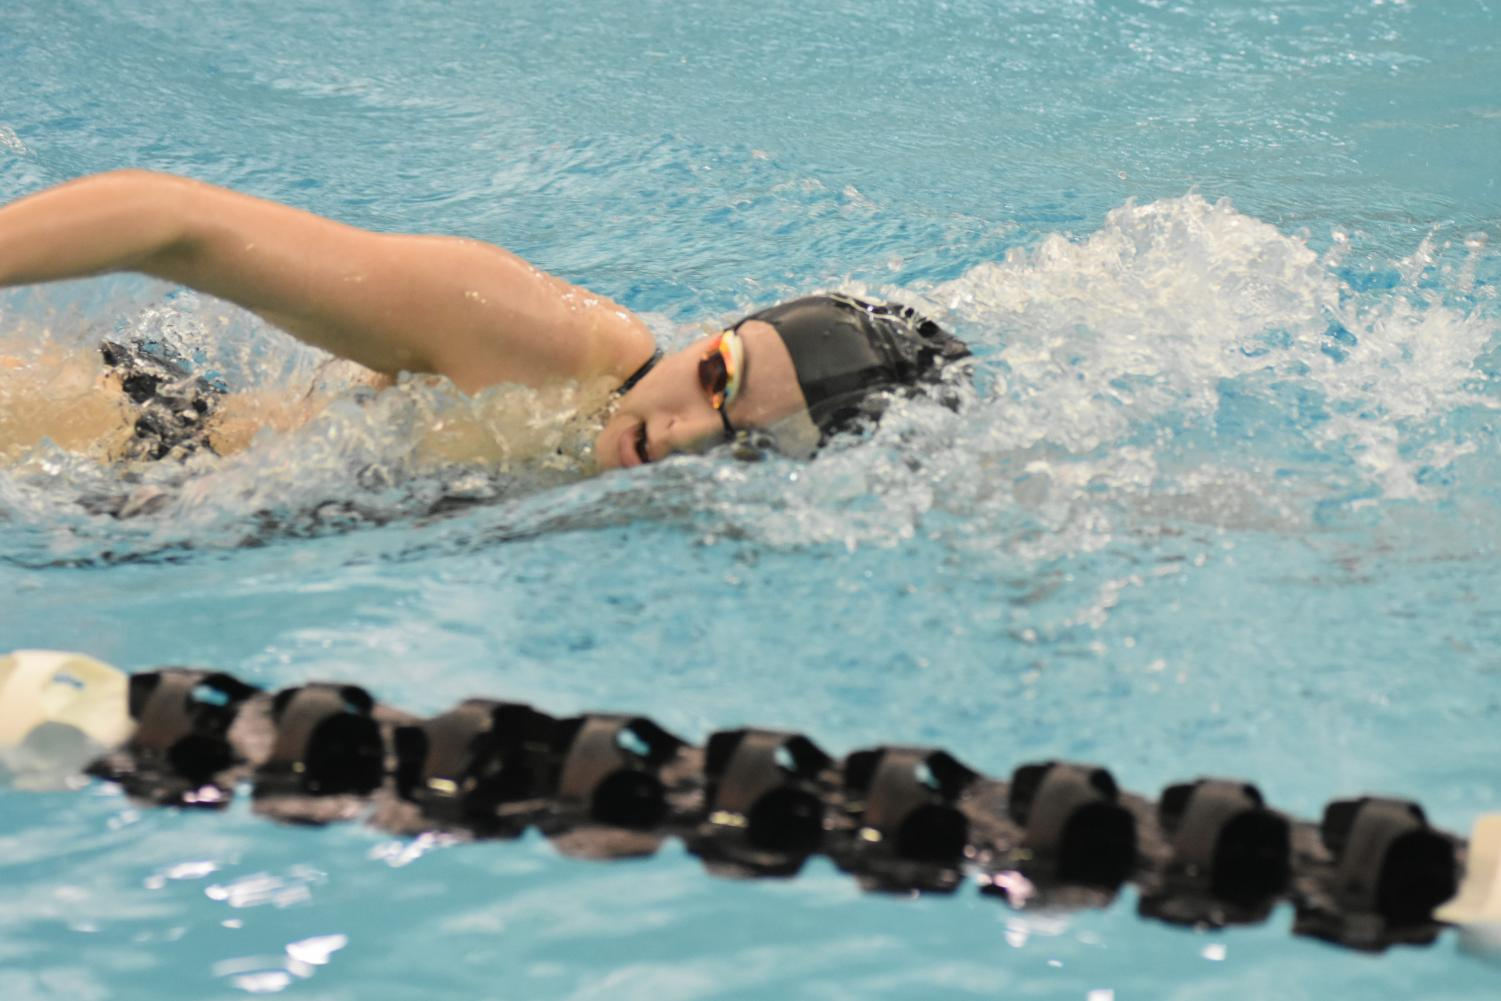 Senior Luisa Alcala swims freestyle during a meet last January. It took her a number of months to get back into shape after being sidelined with a torn labrum.